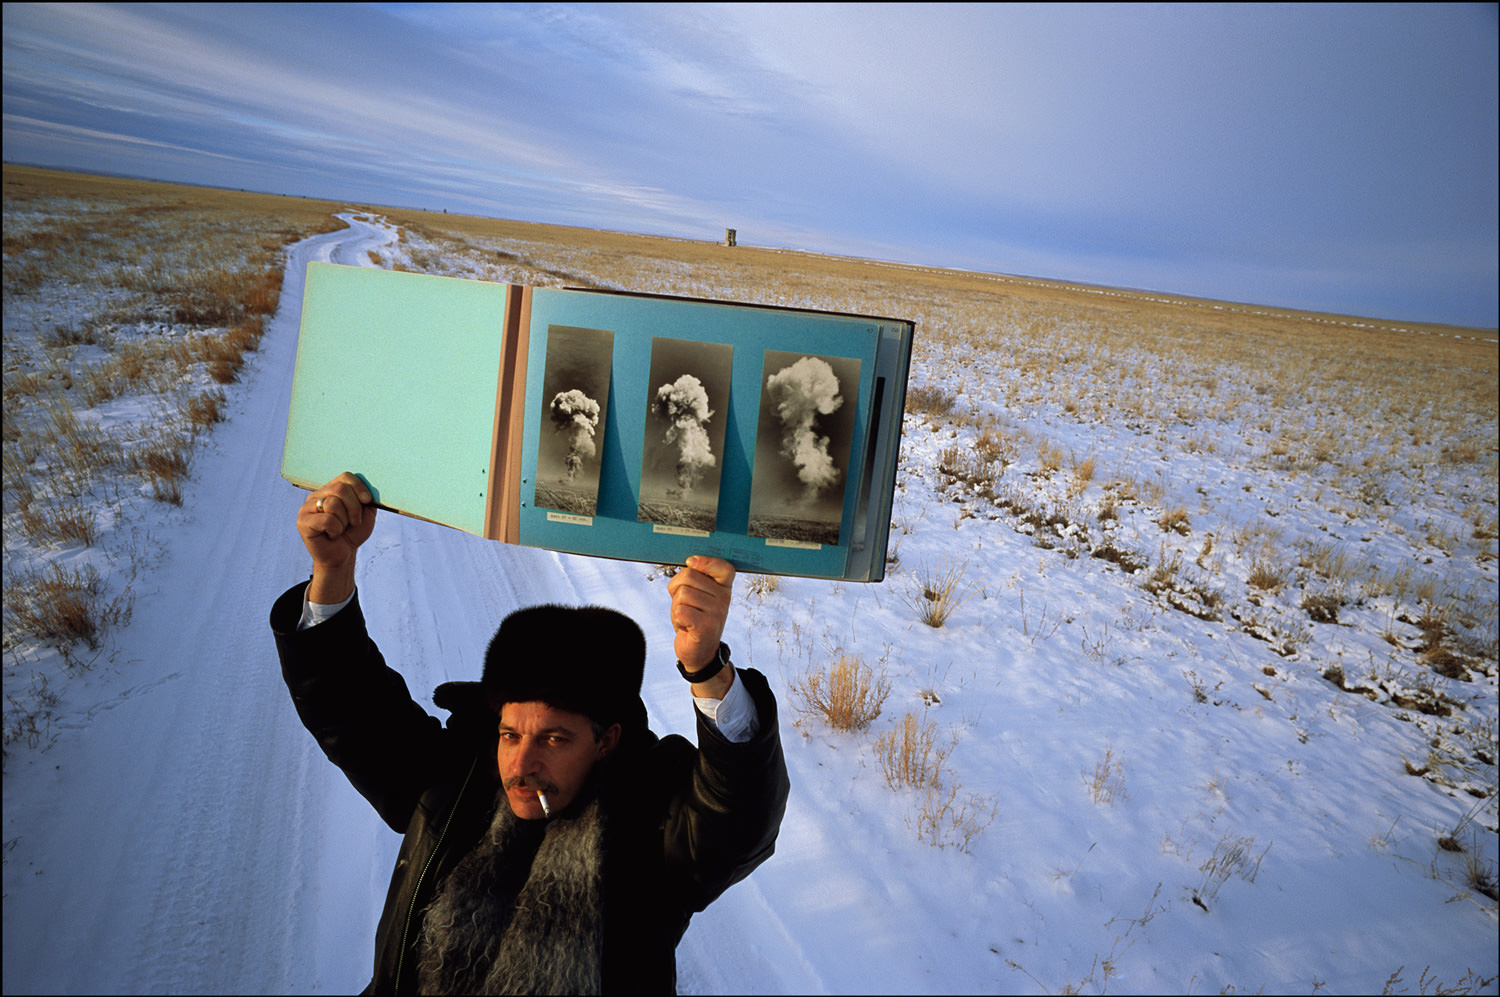 With pride, Vladimir Afonin, Security Chief, shows a book documenting Russian nuclear tests in Semipolitinsk, Kazakhstan. It is 30 degrees below zero.